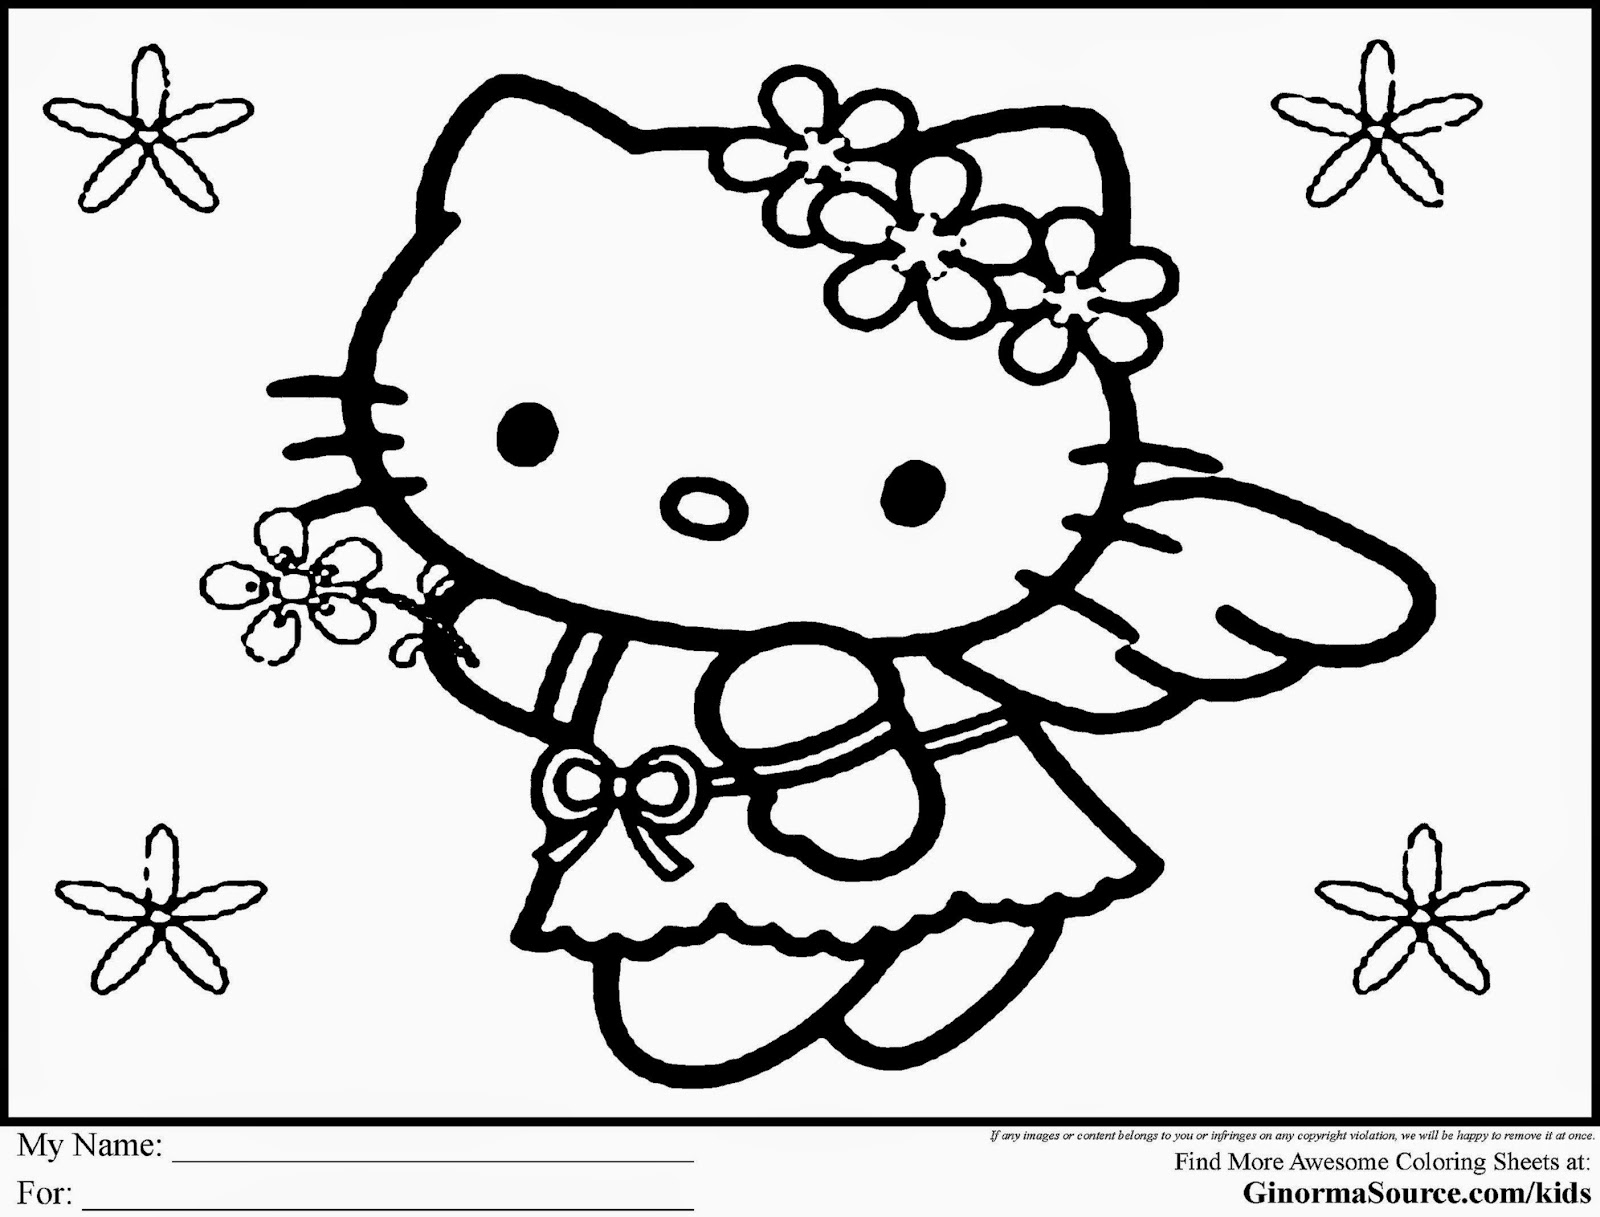 This is an image of Inventive Free Printable Hello Kitty Coloring Pages